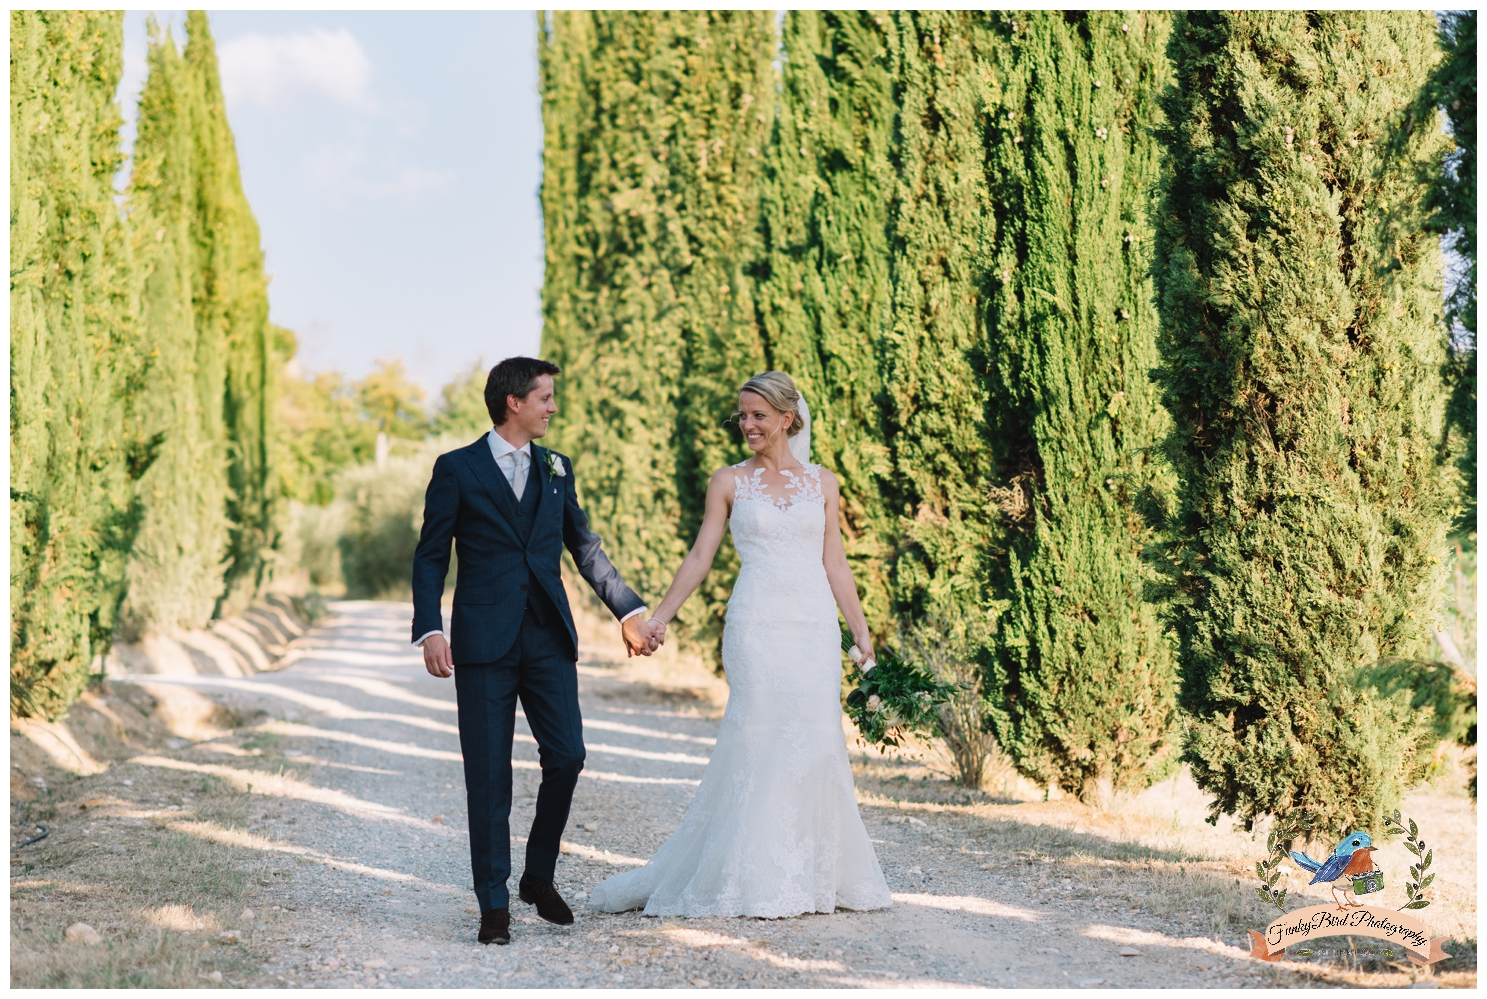 Wedding_Photographer_Tuscany_Italy_0043.jpg